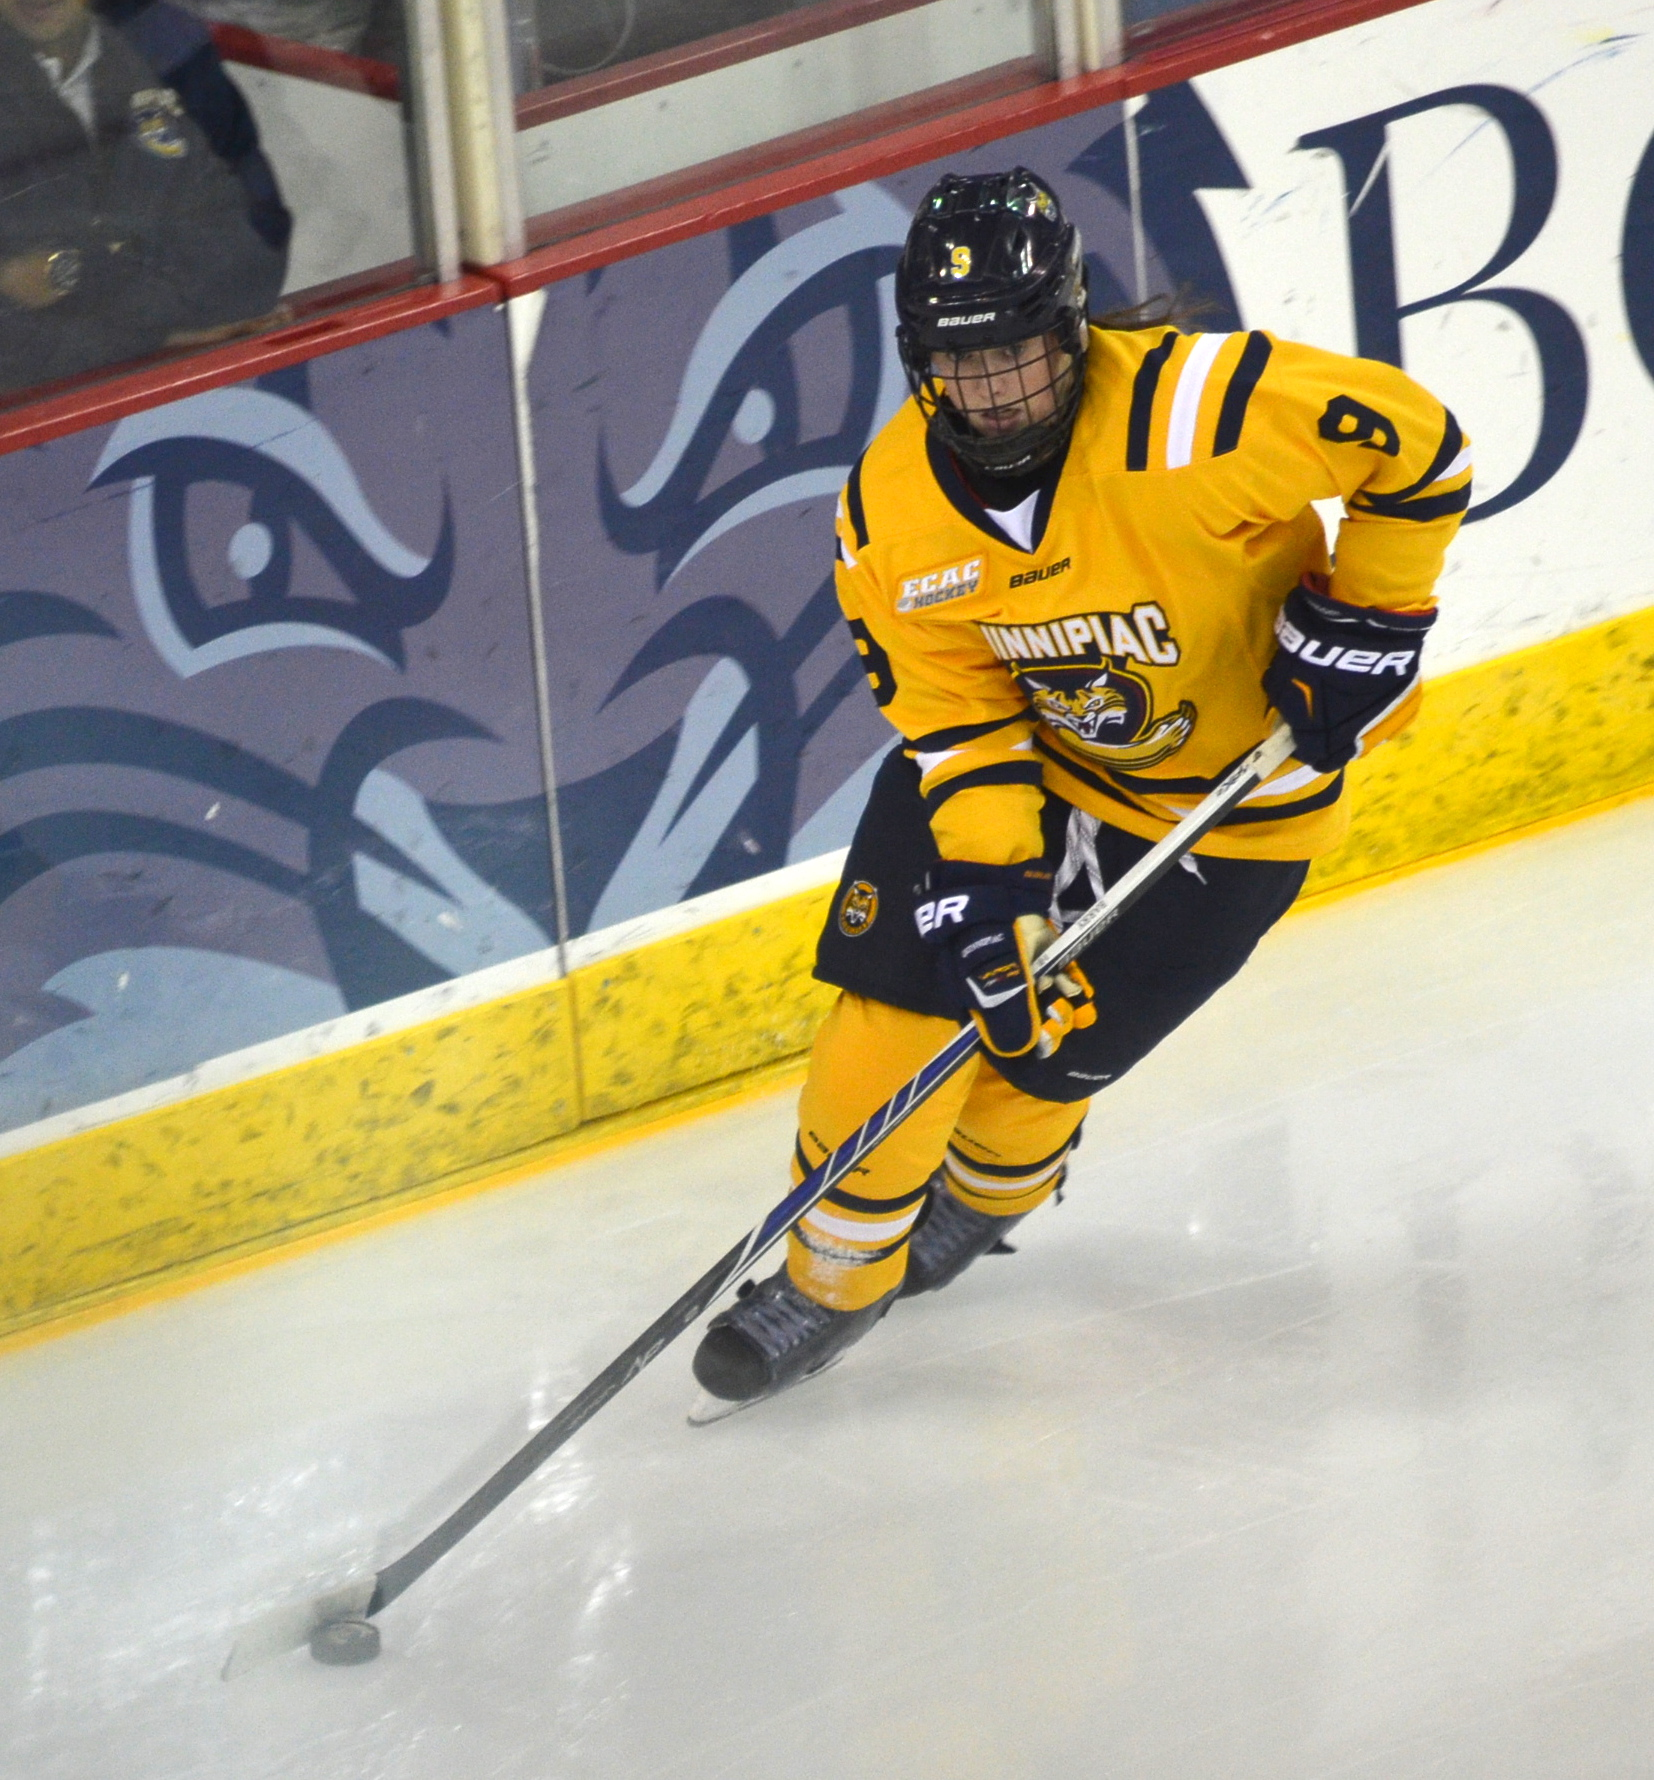 Quinnipiac women's ice hockey vs Dartmouth 12/4/15